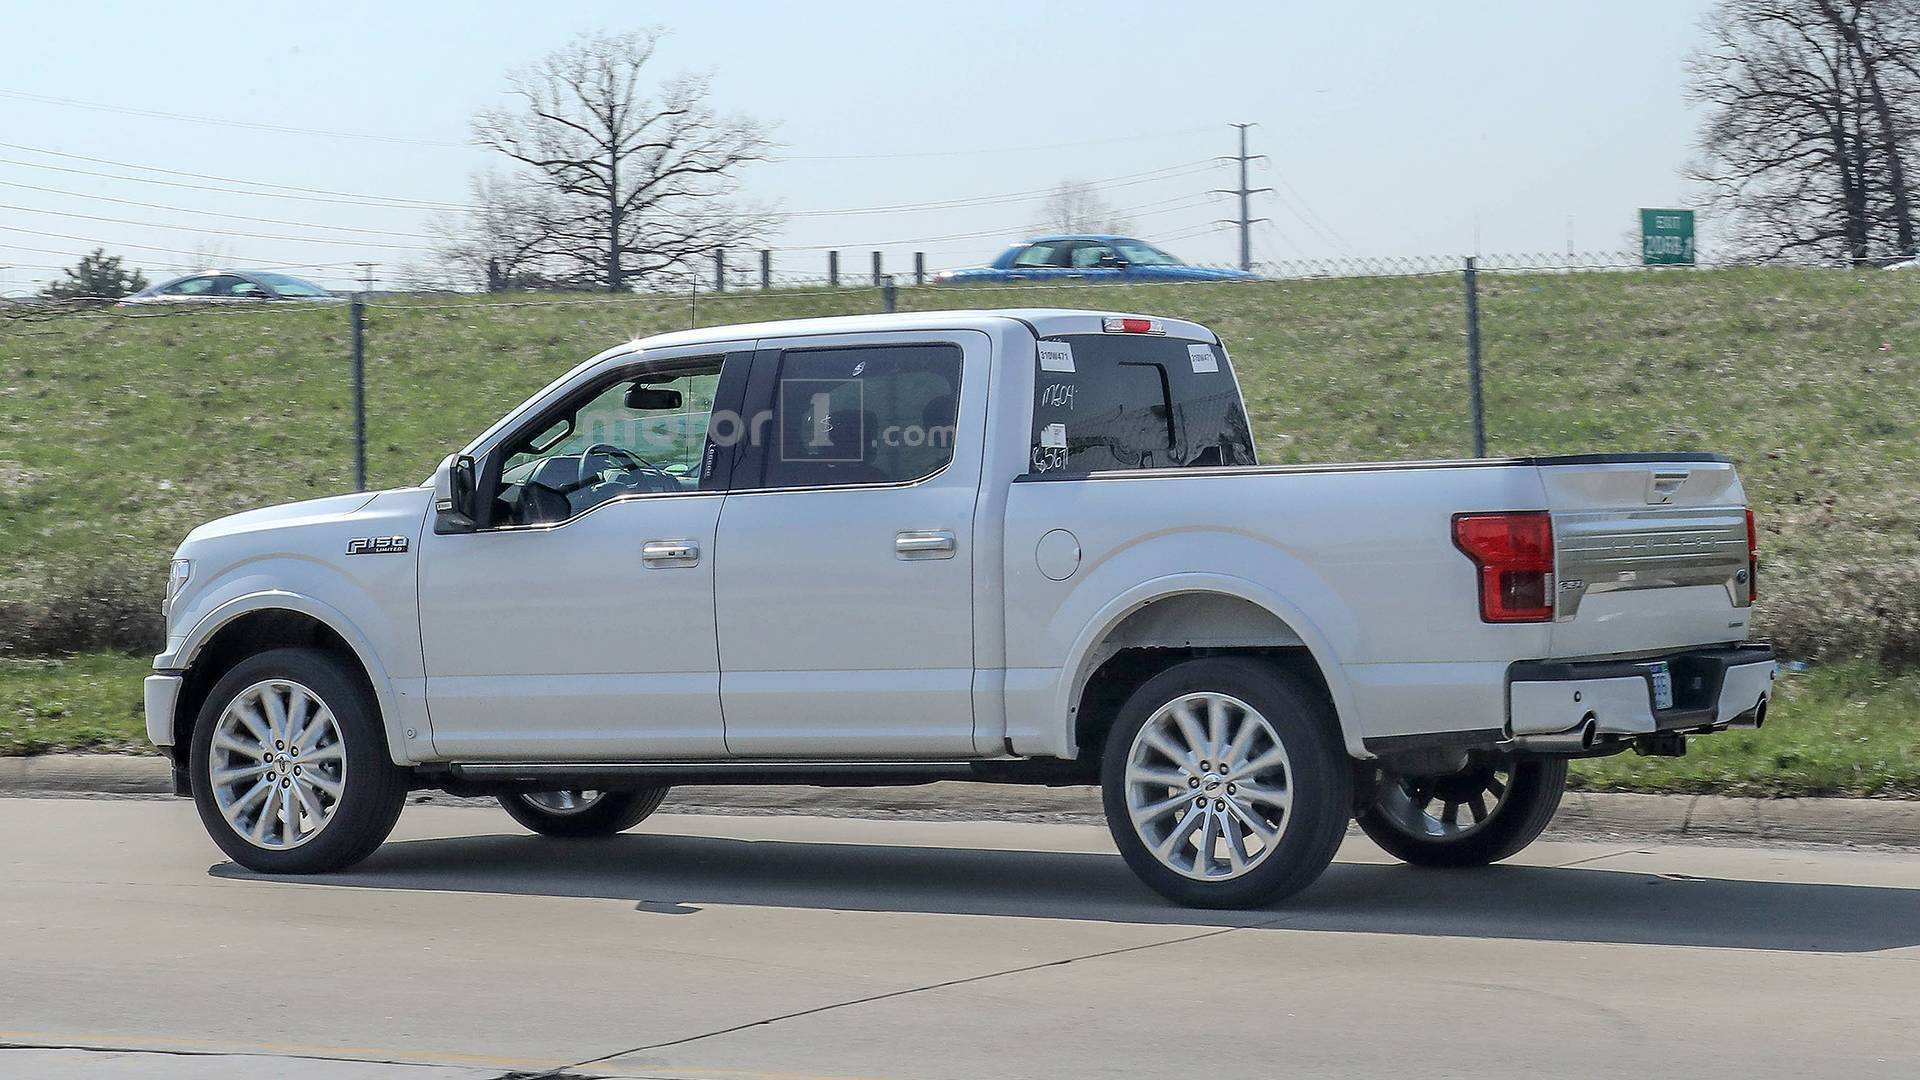 91 Great 2019 Ford 150 Lariat History for 2019 Ford 150 Lariat